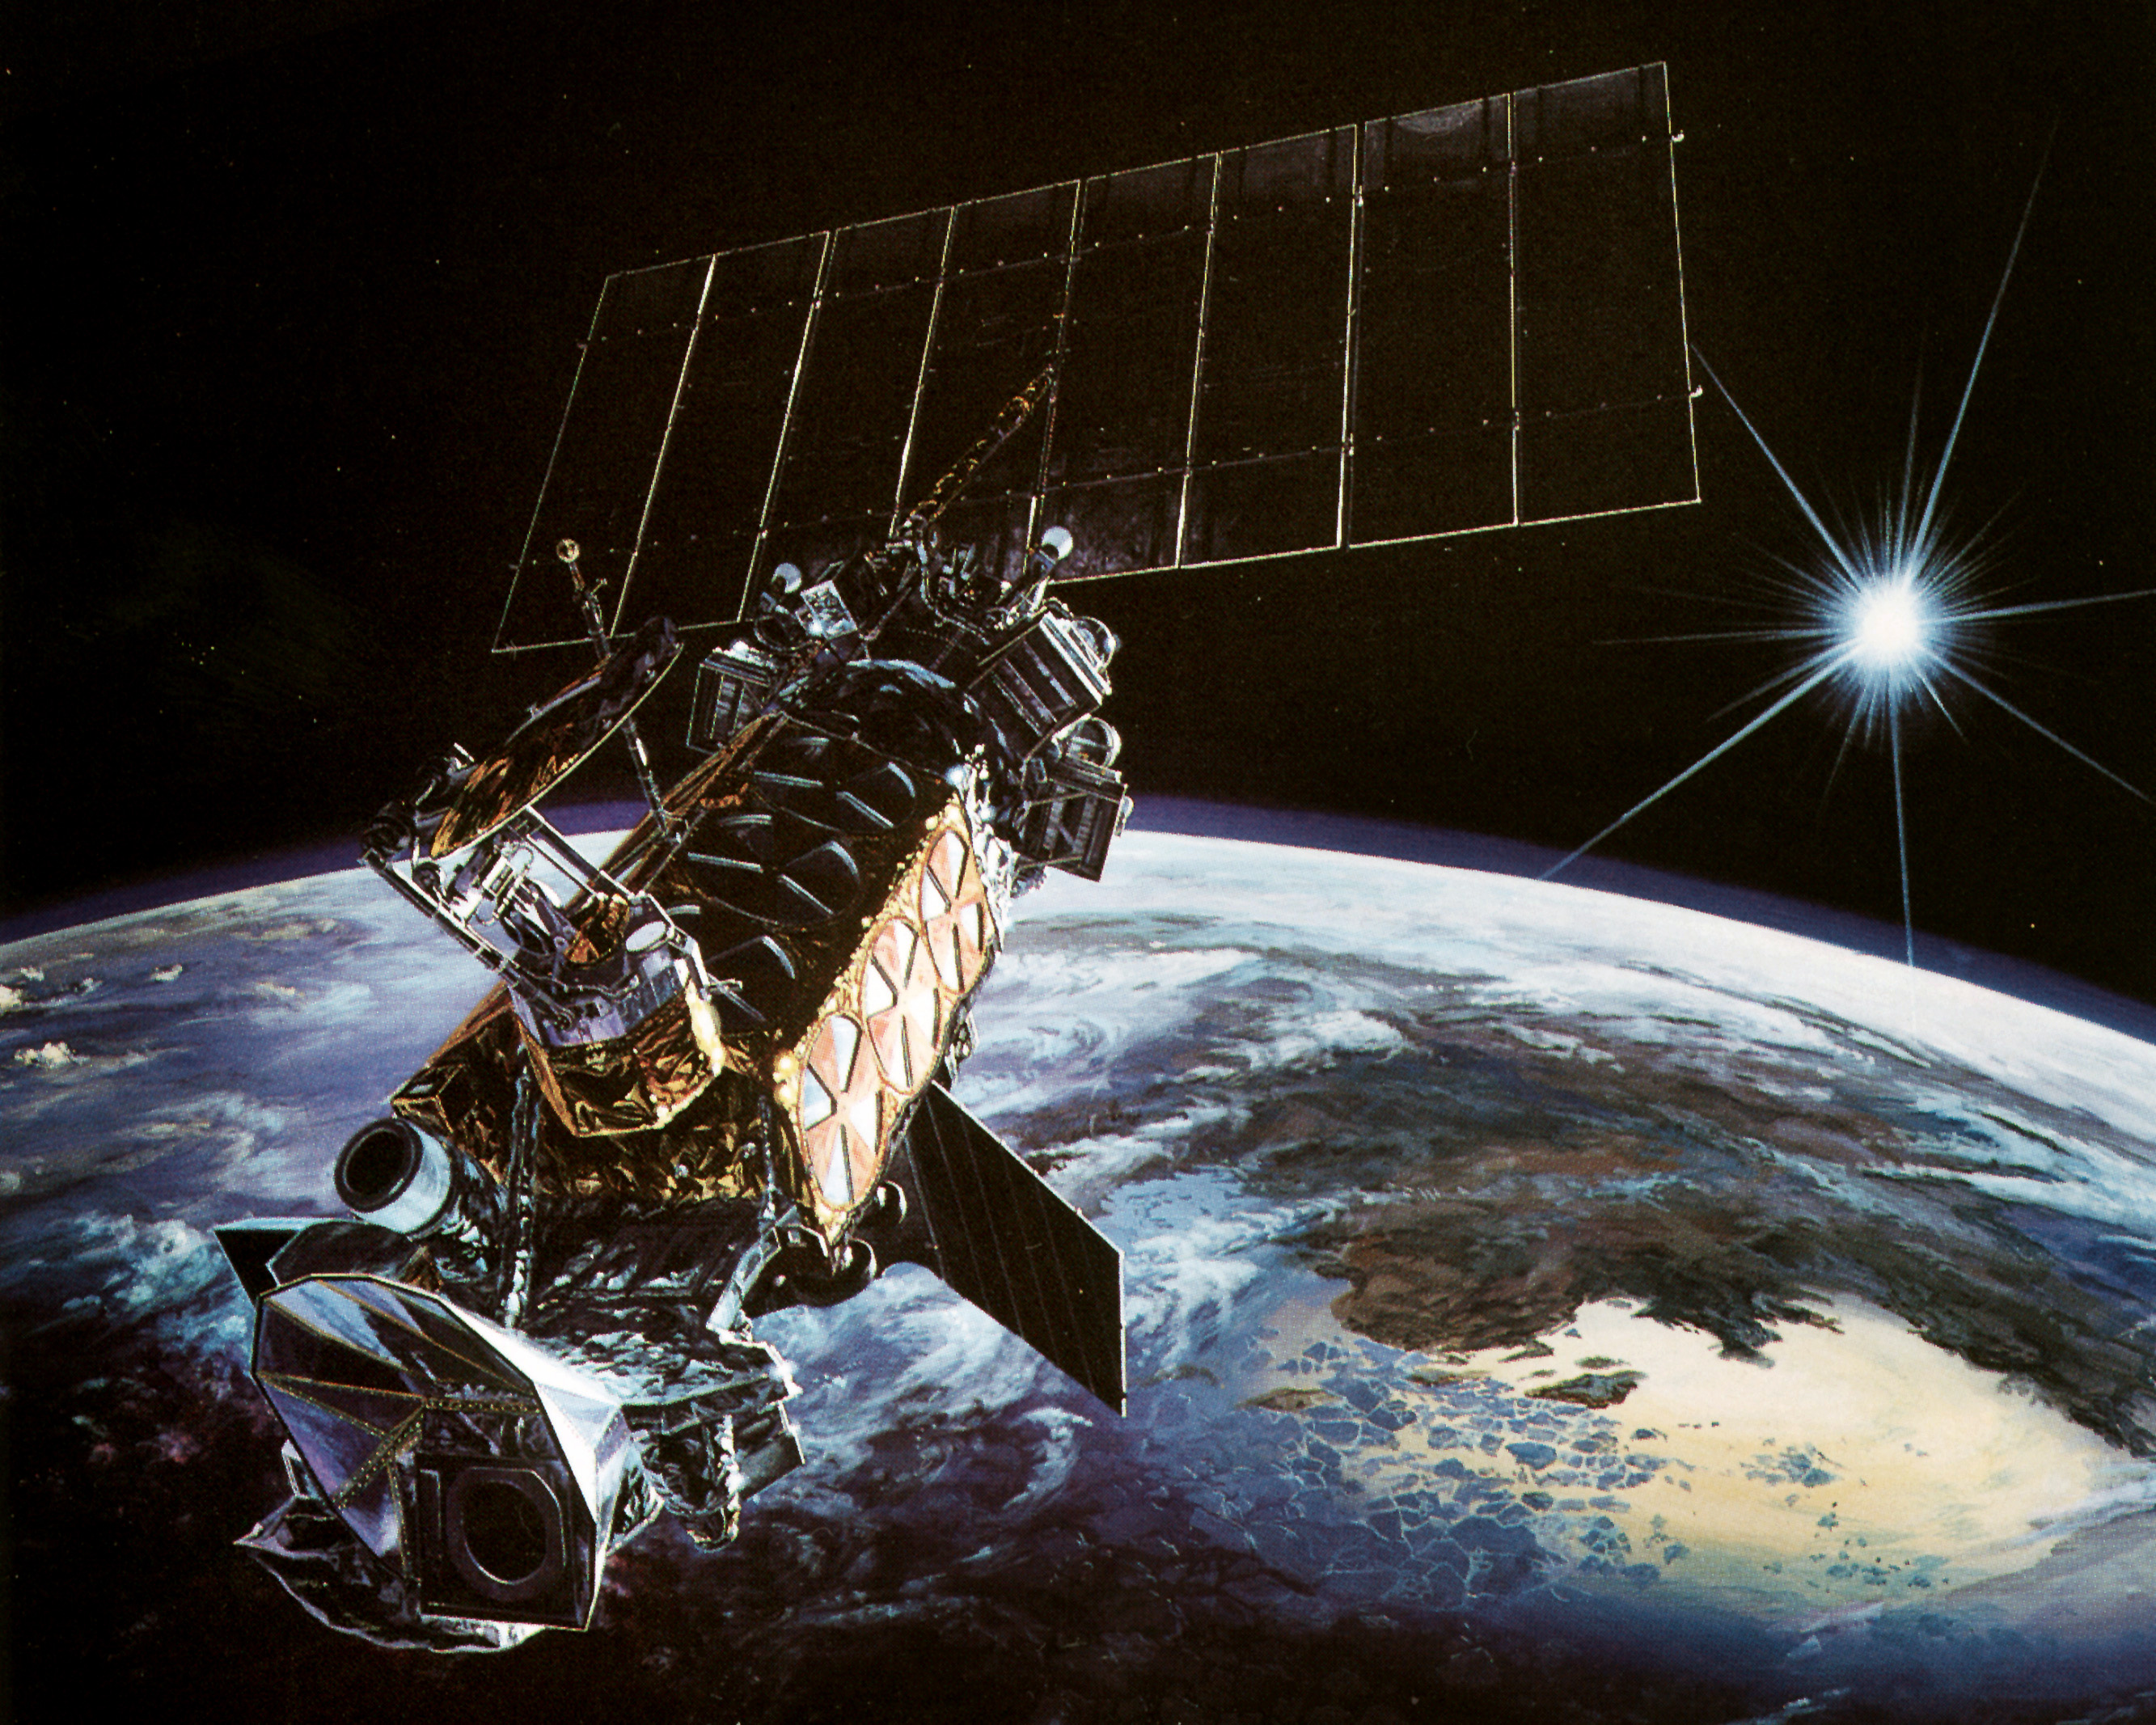 20-year-old Military Weather Satellite Exploded in Orbit